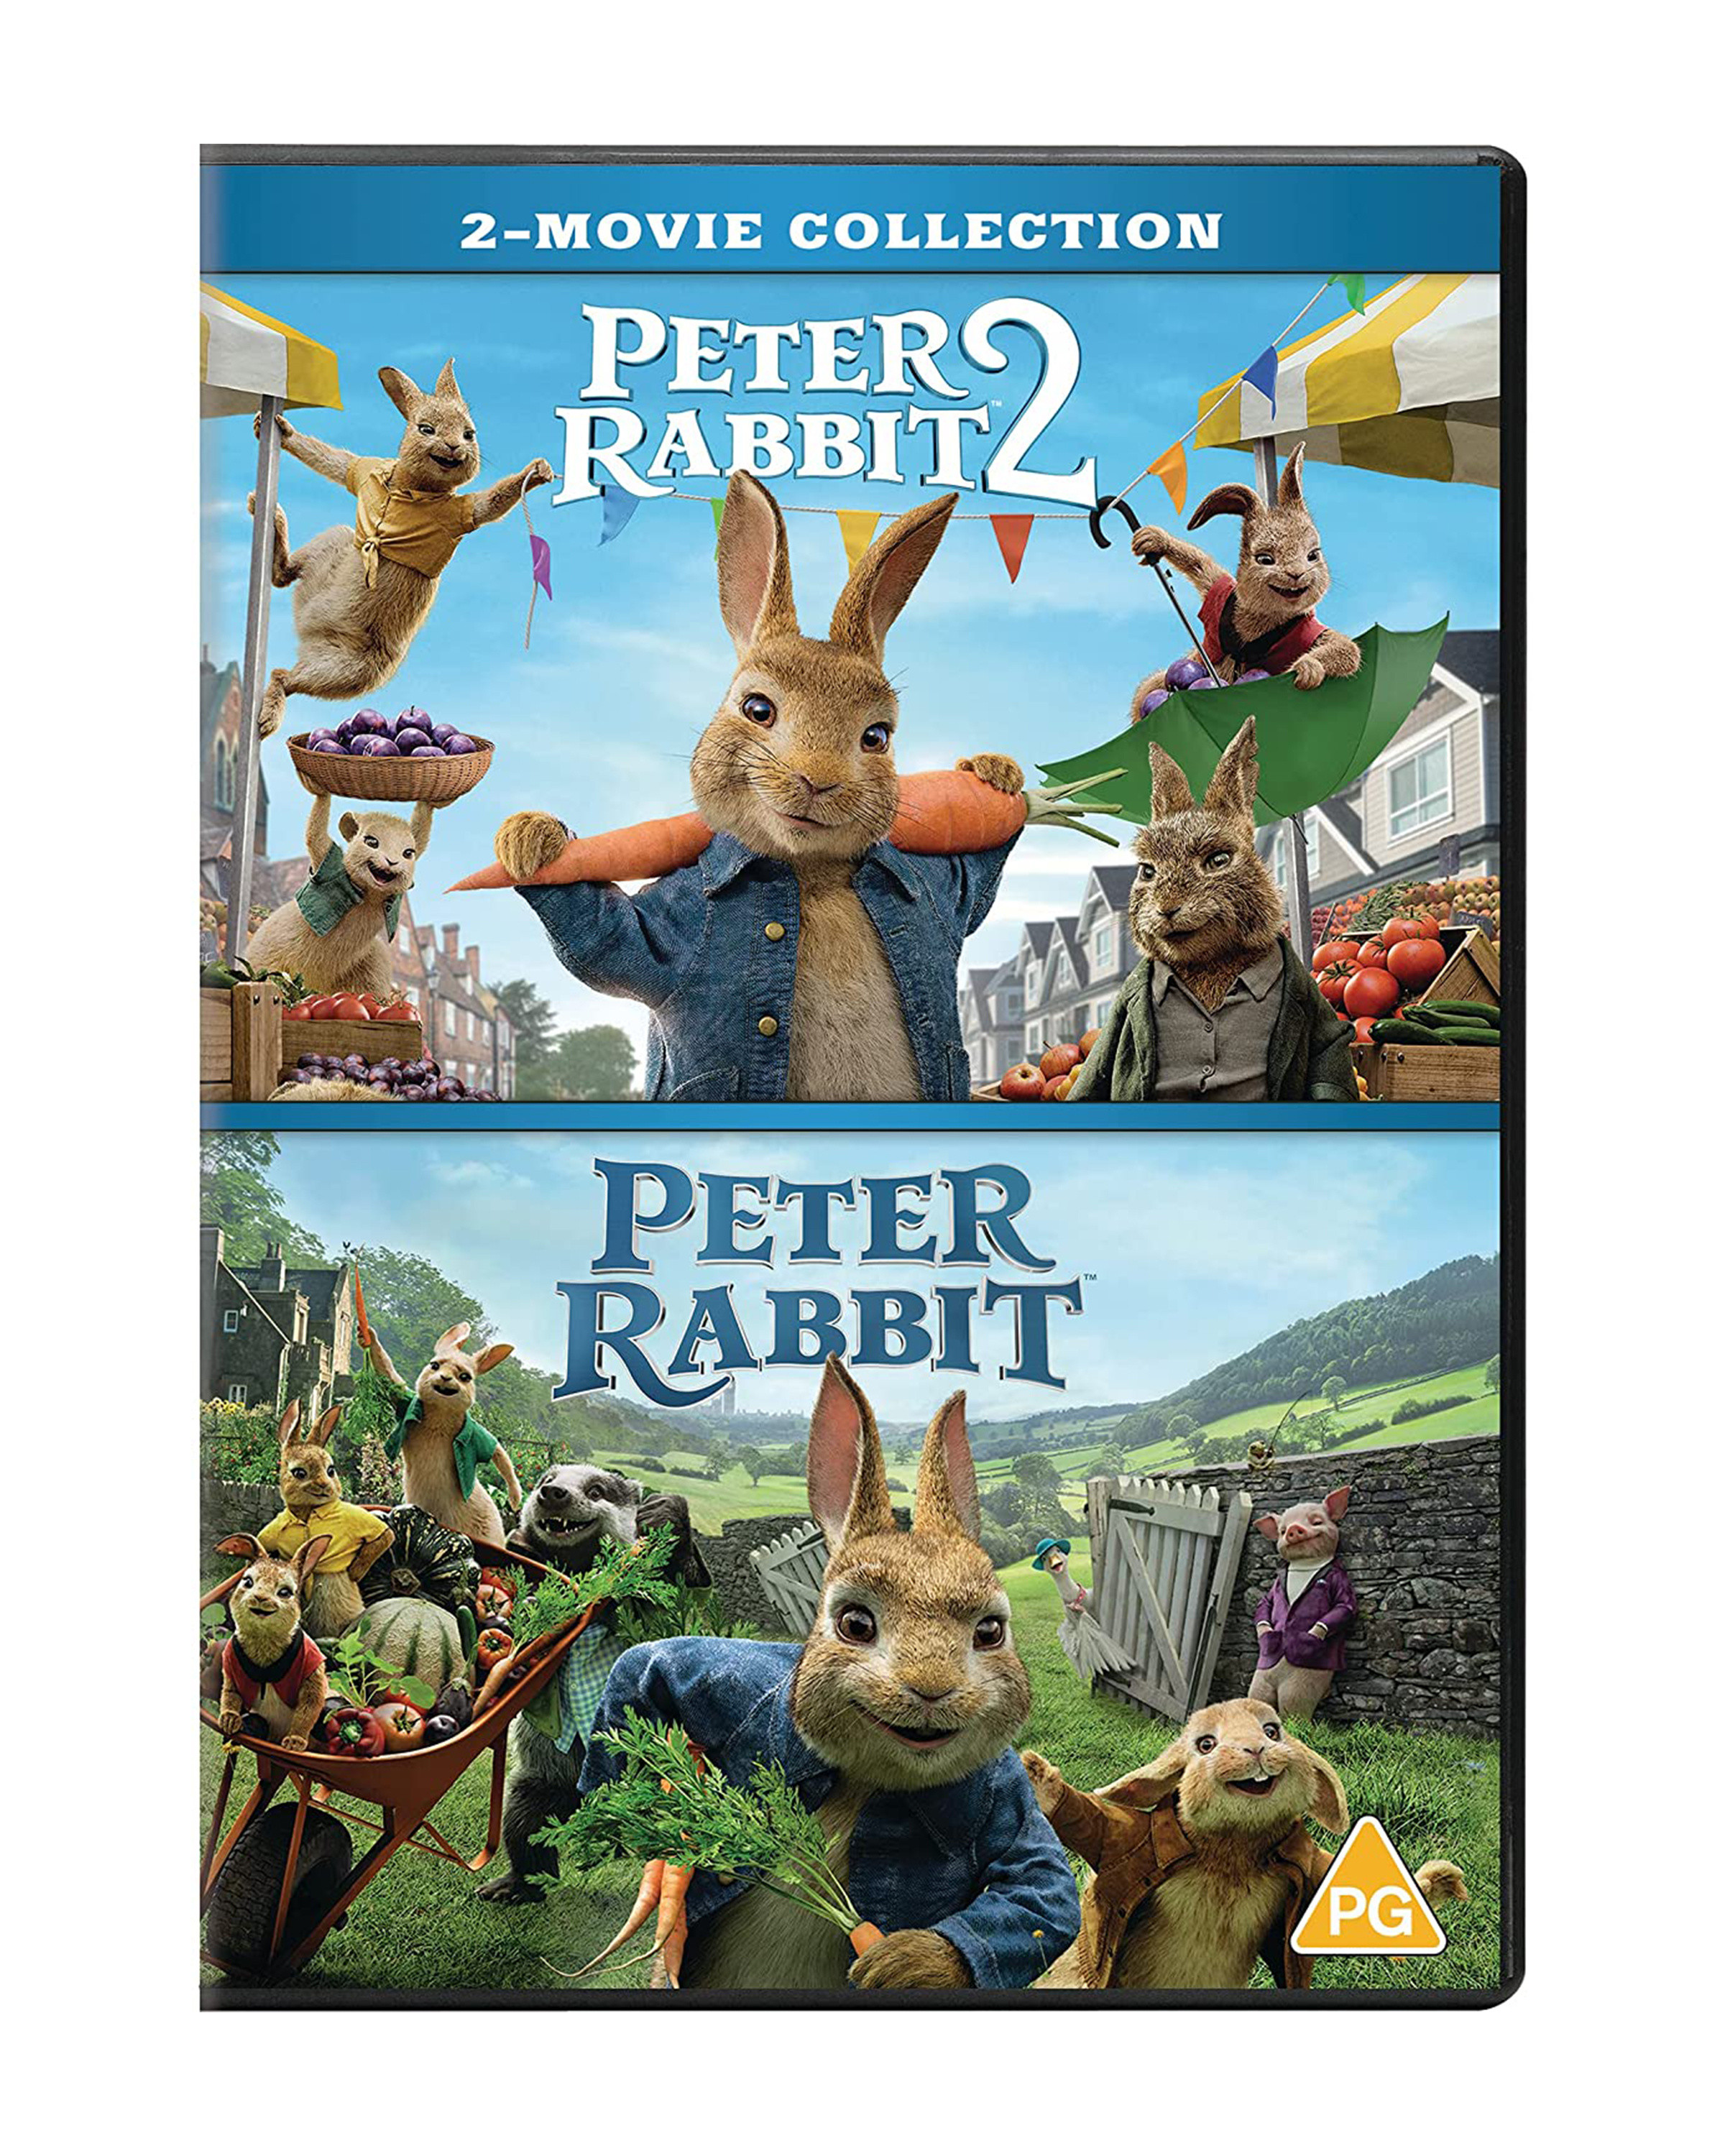 Peter Rabbit 1 & 2 DVD Collection